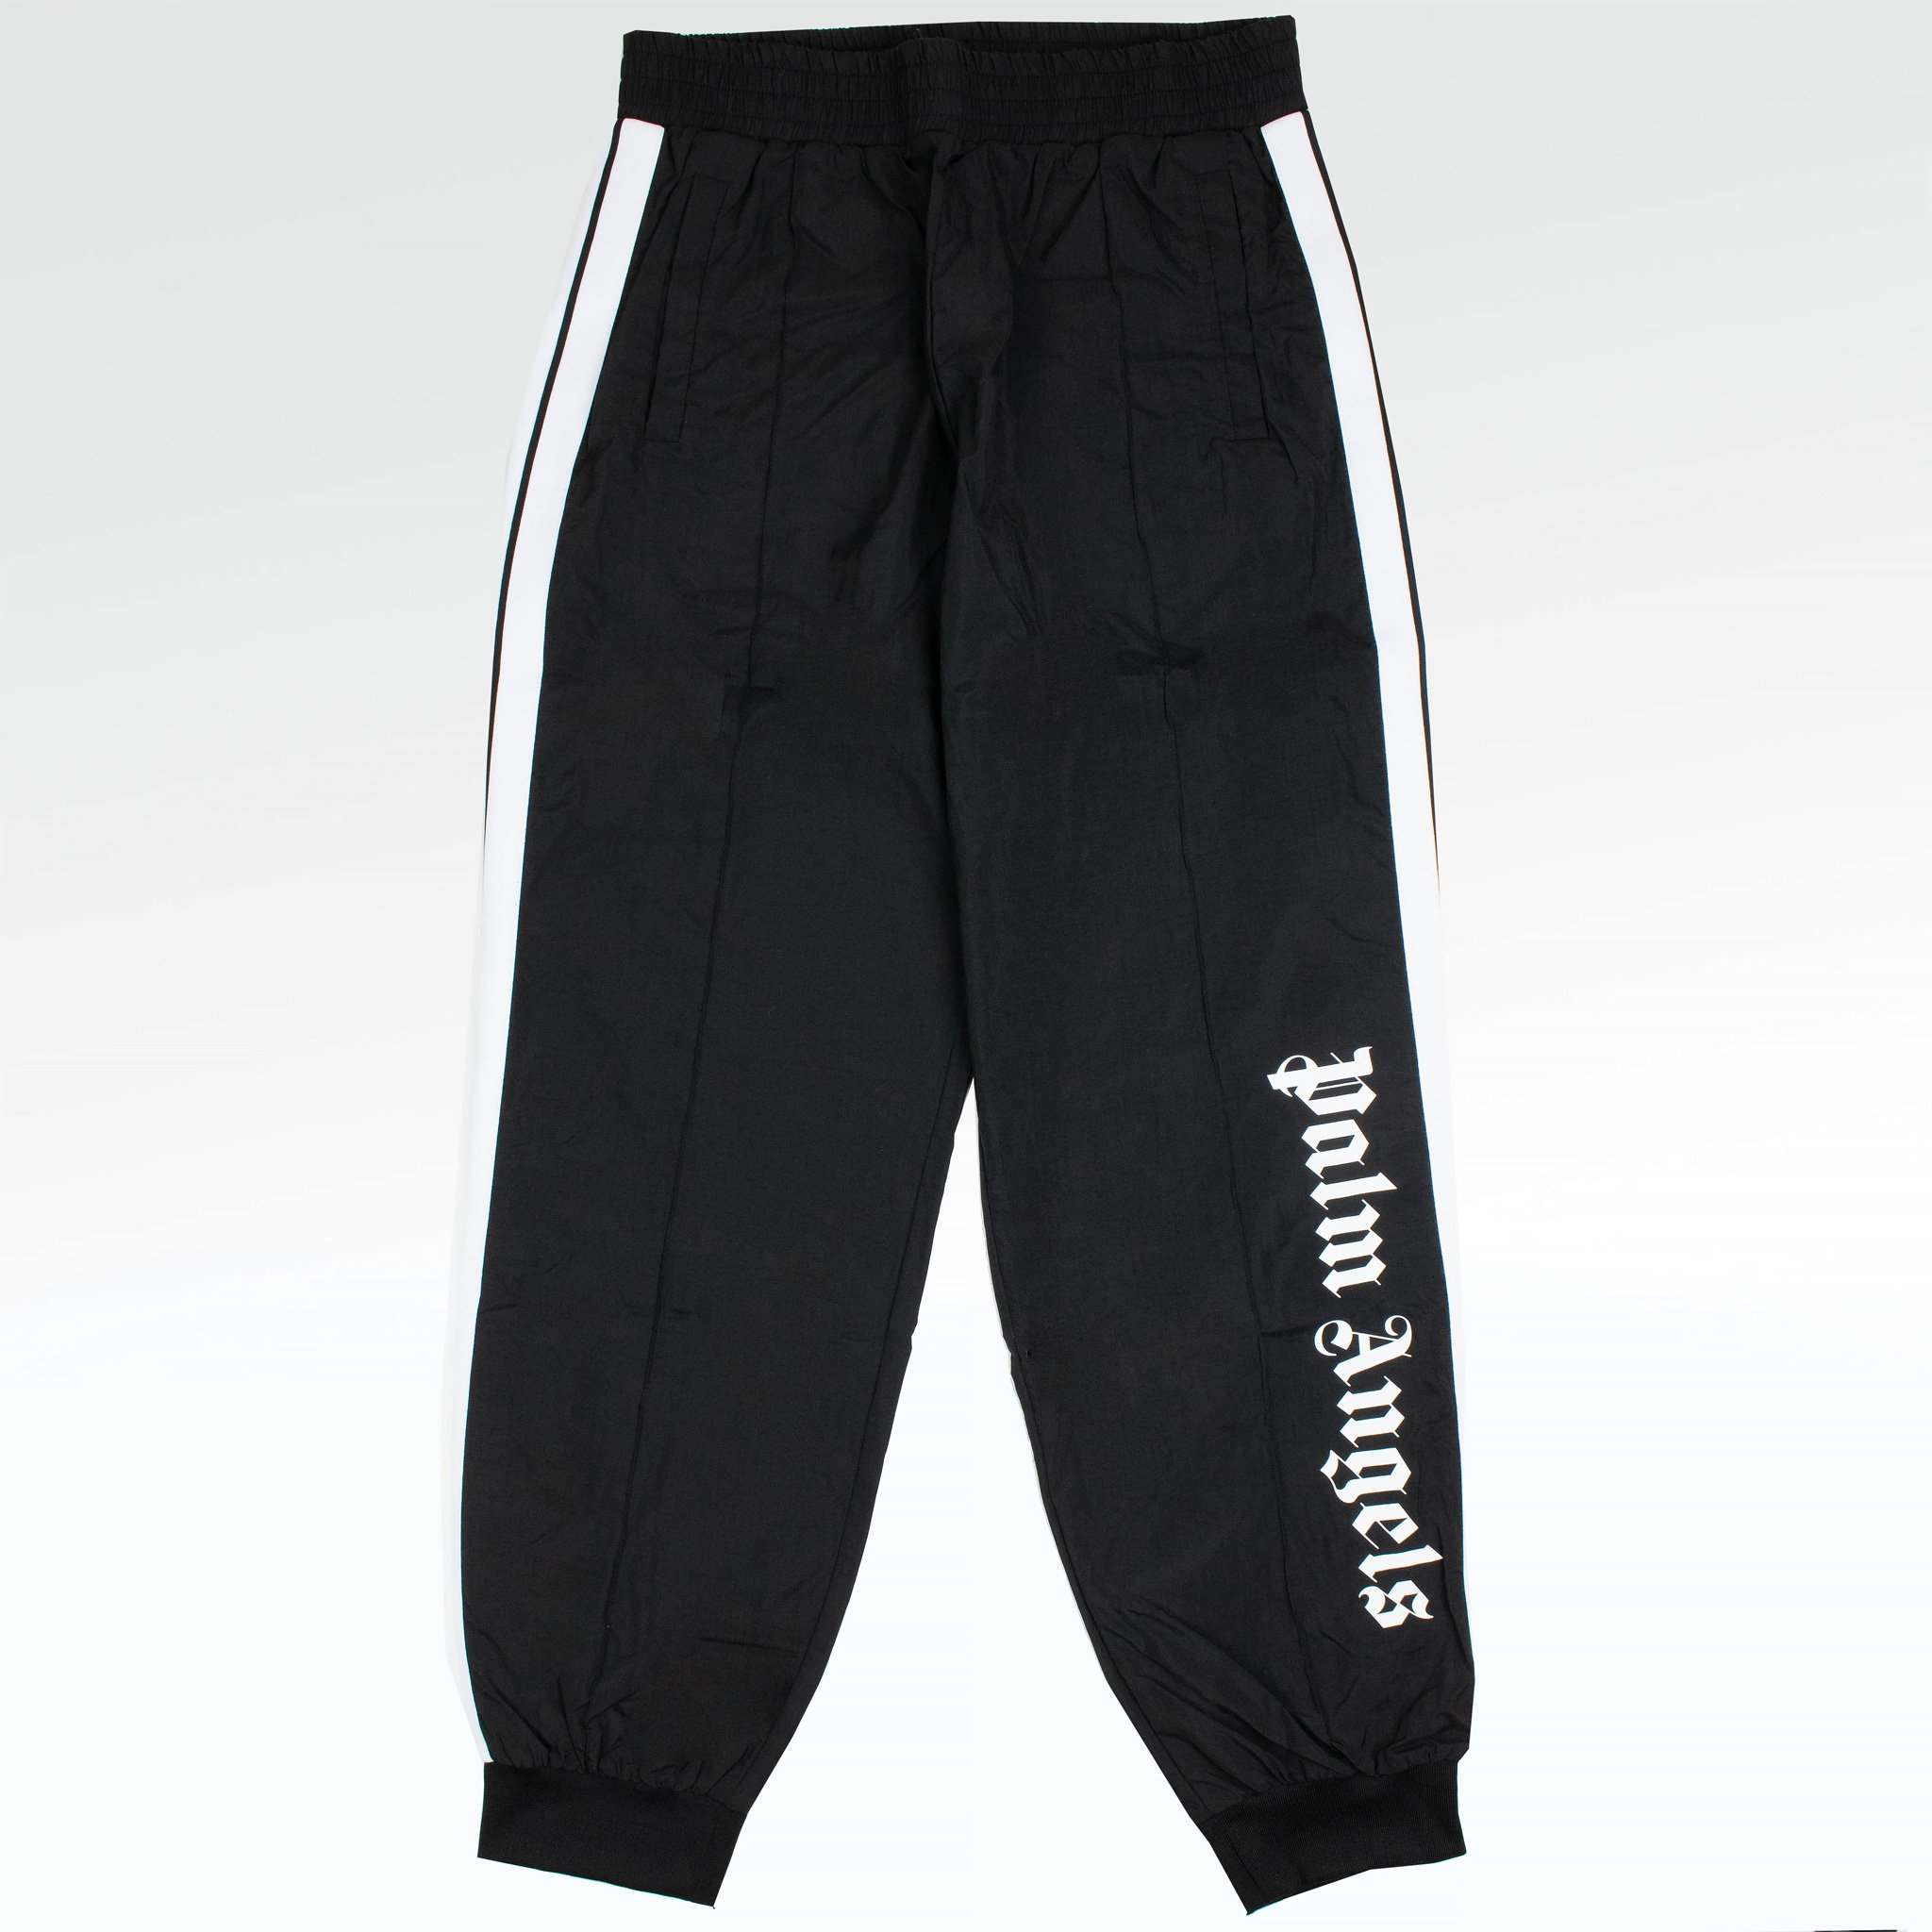 Штаны Штаны Palm Angels Oversize Logo Black Track Pants